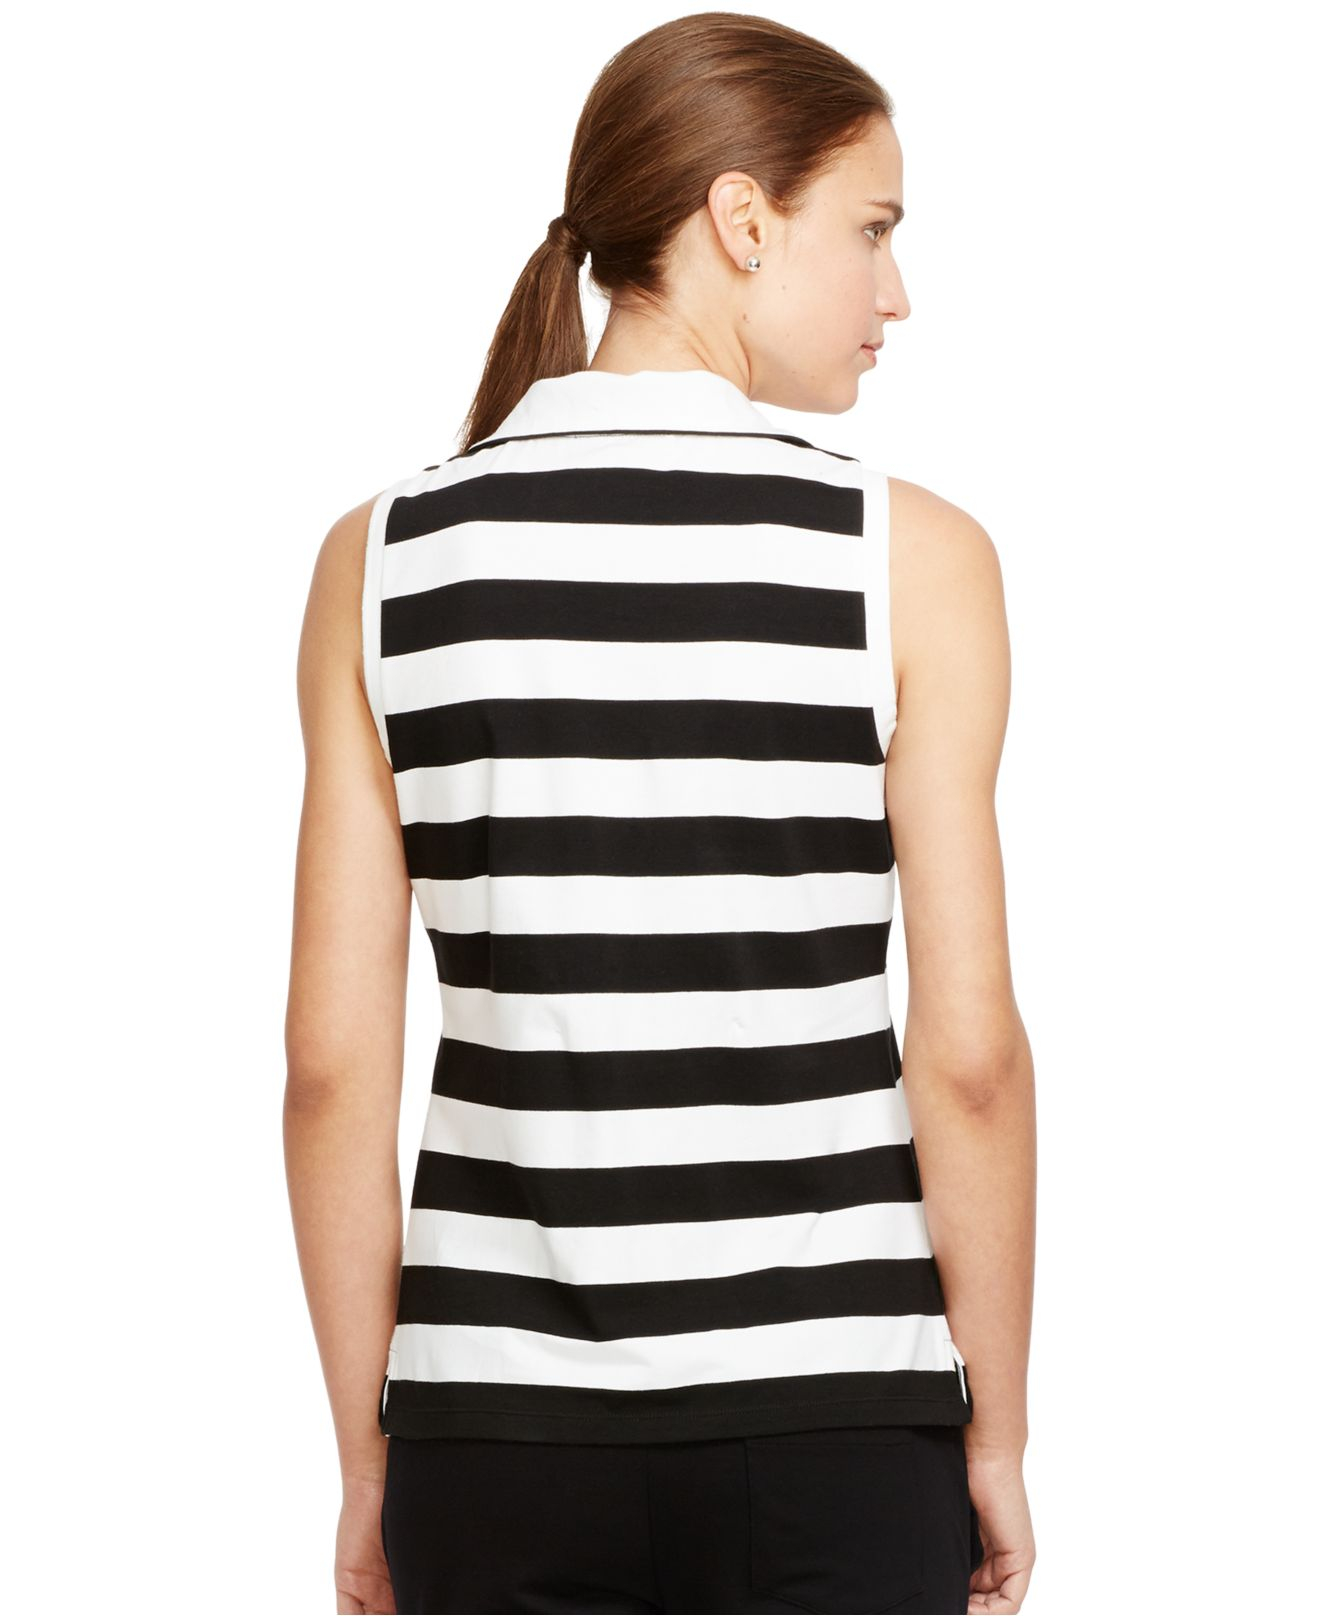 Lauren by ralph lauren striped sleeveless mock turtleneck for Sleeveless mock turtleneck shirts